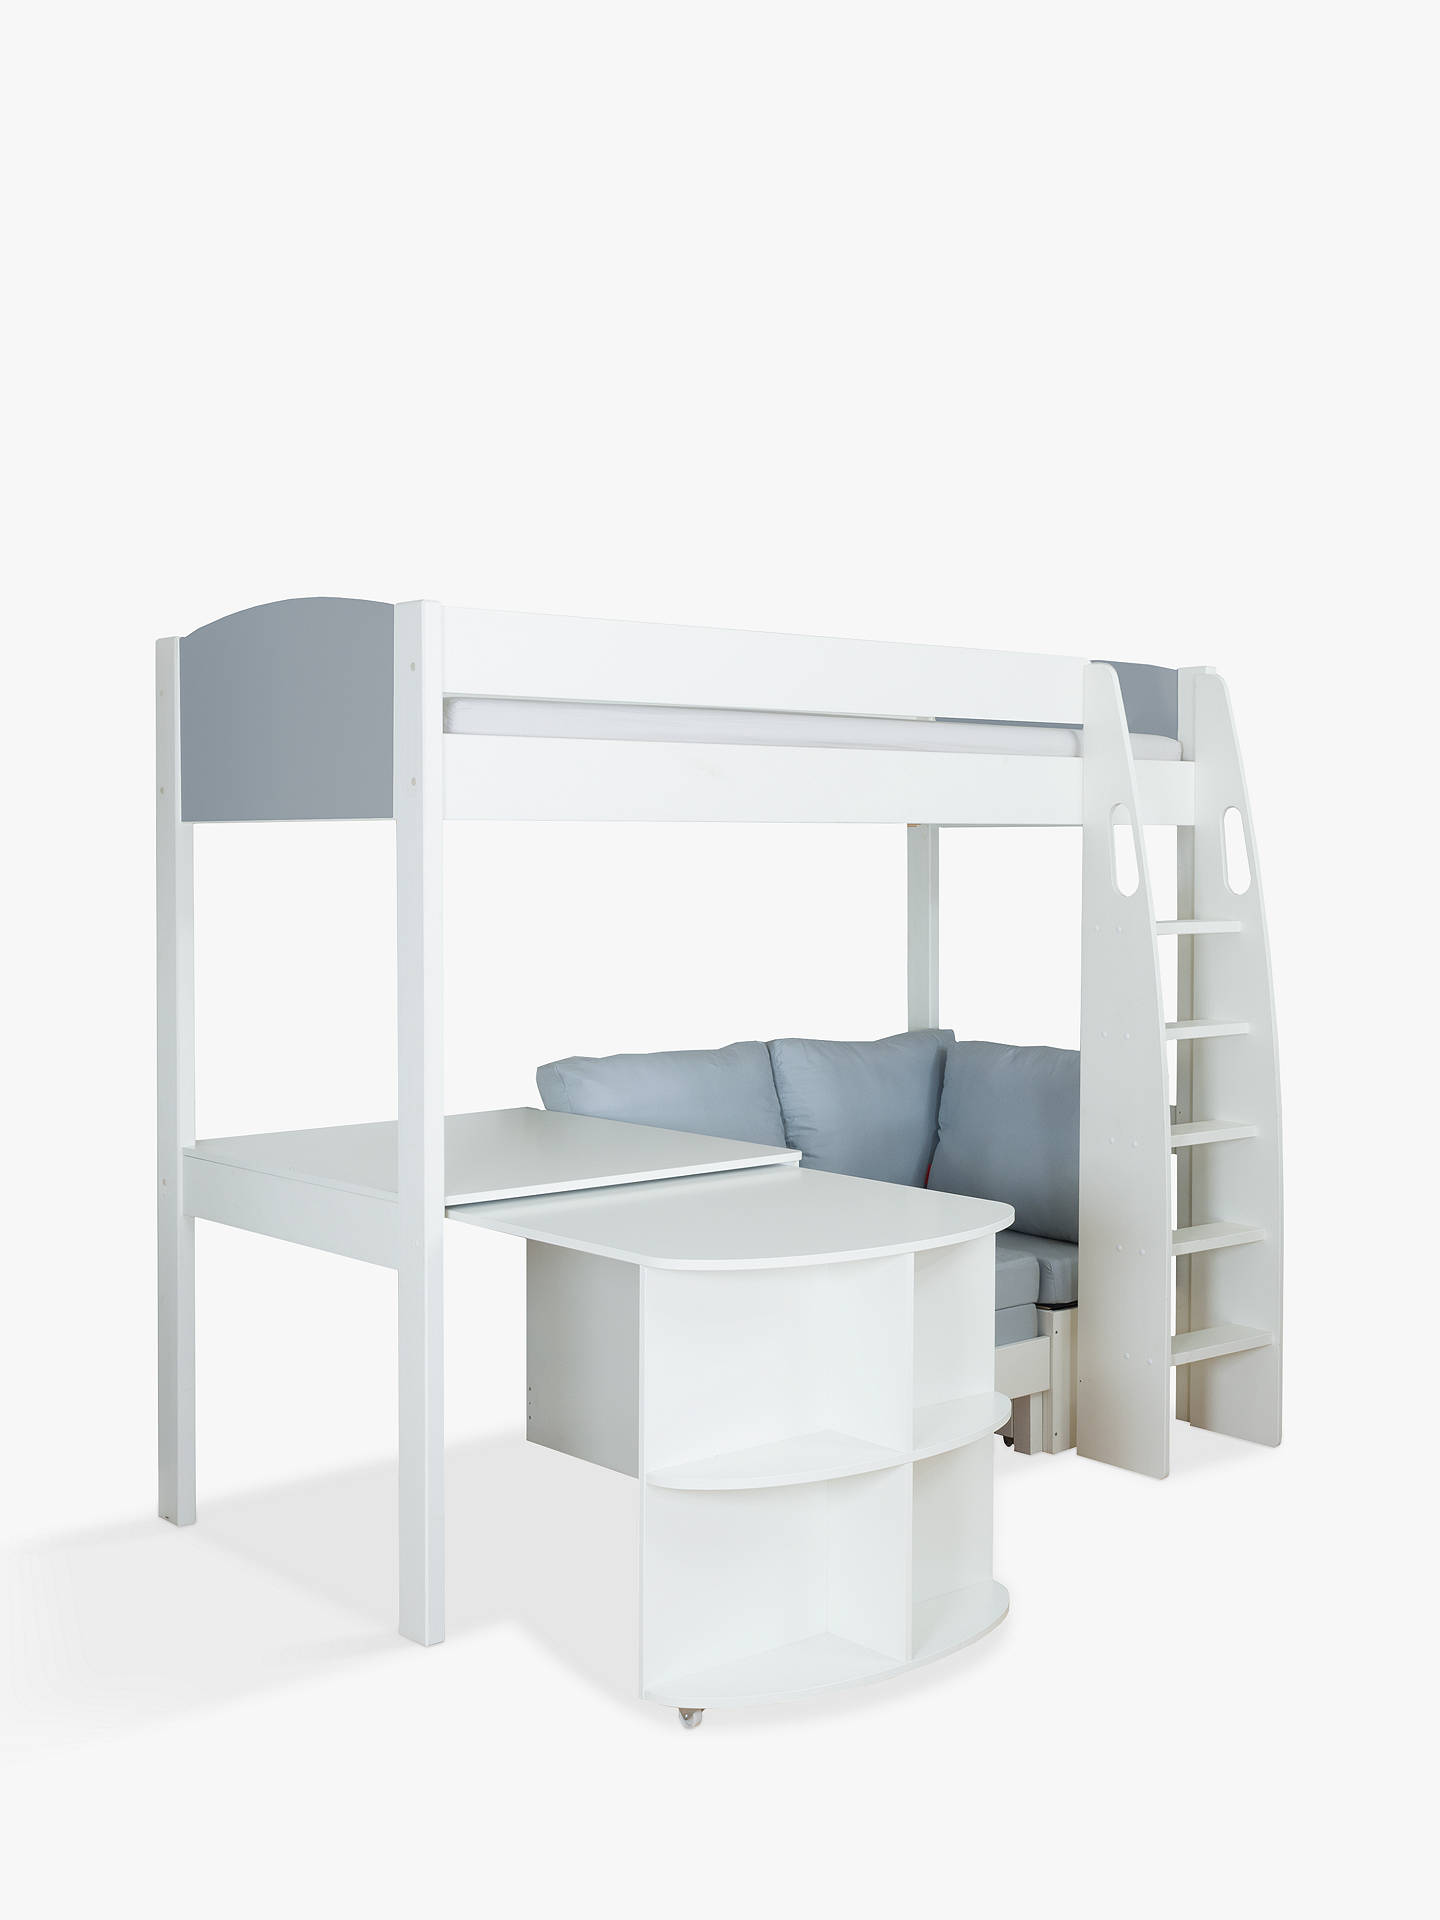 Stompa Uno S Plus Single Chair Bed